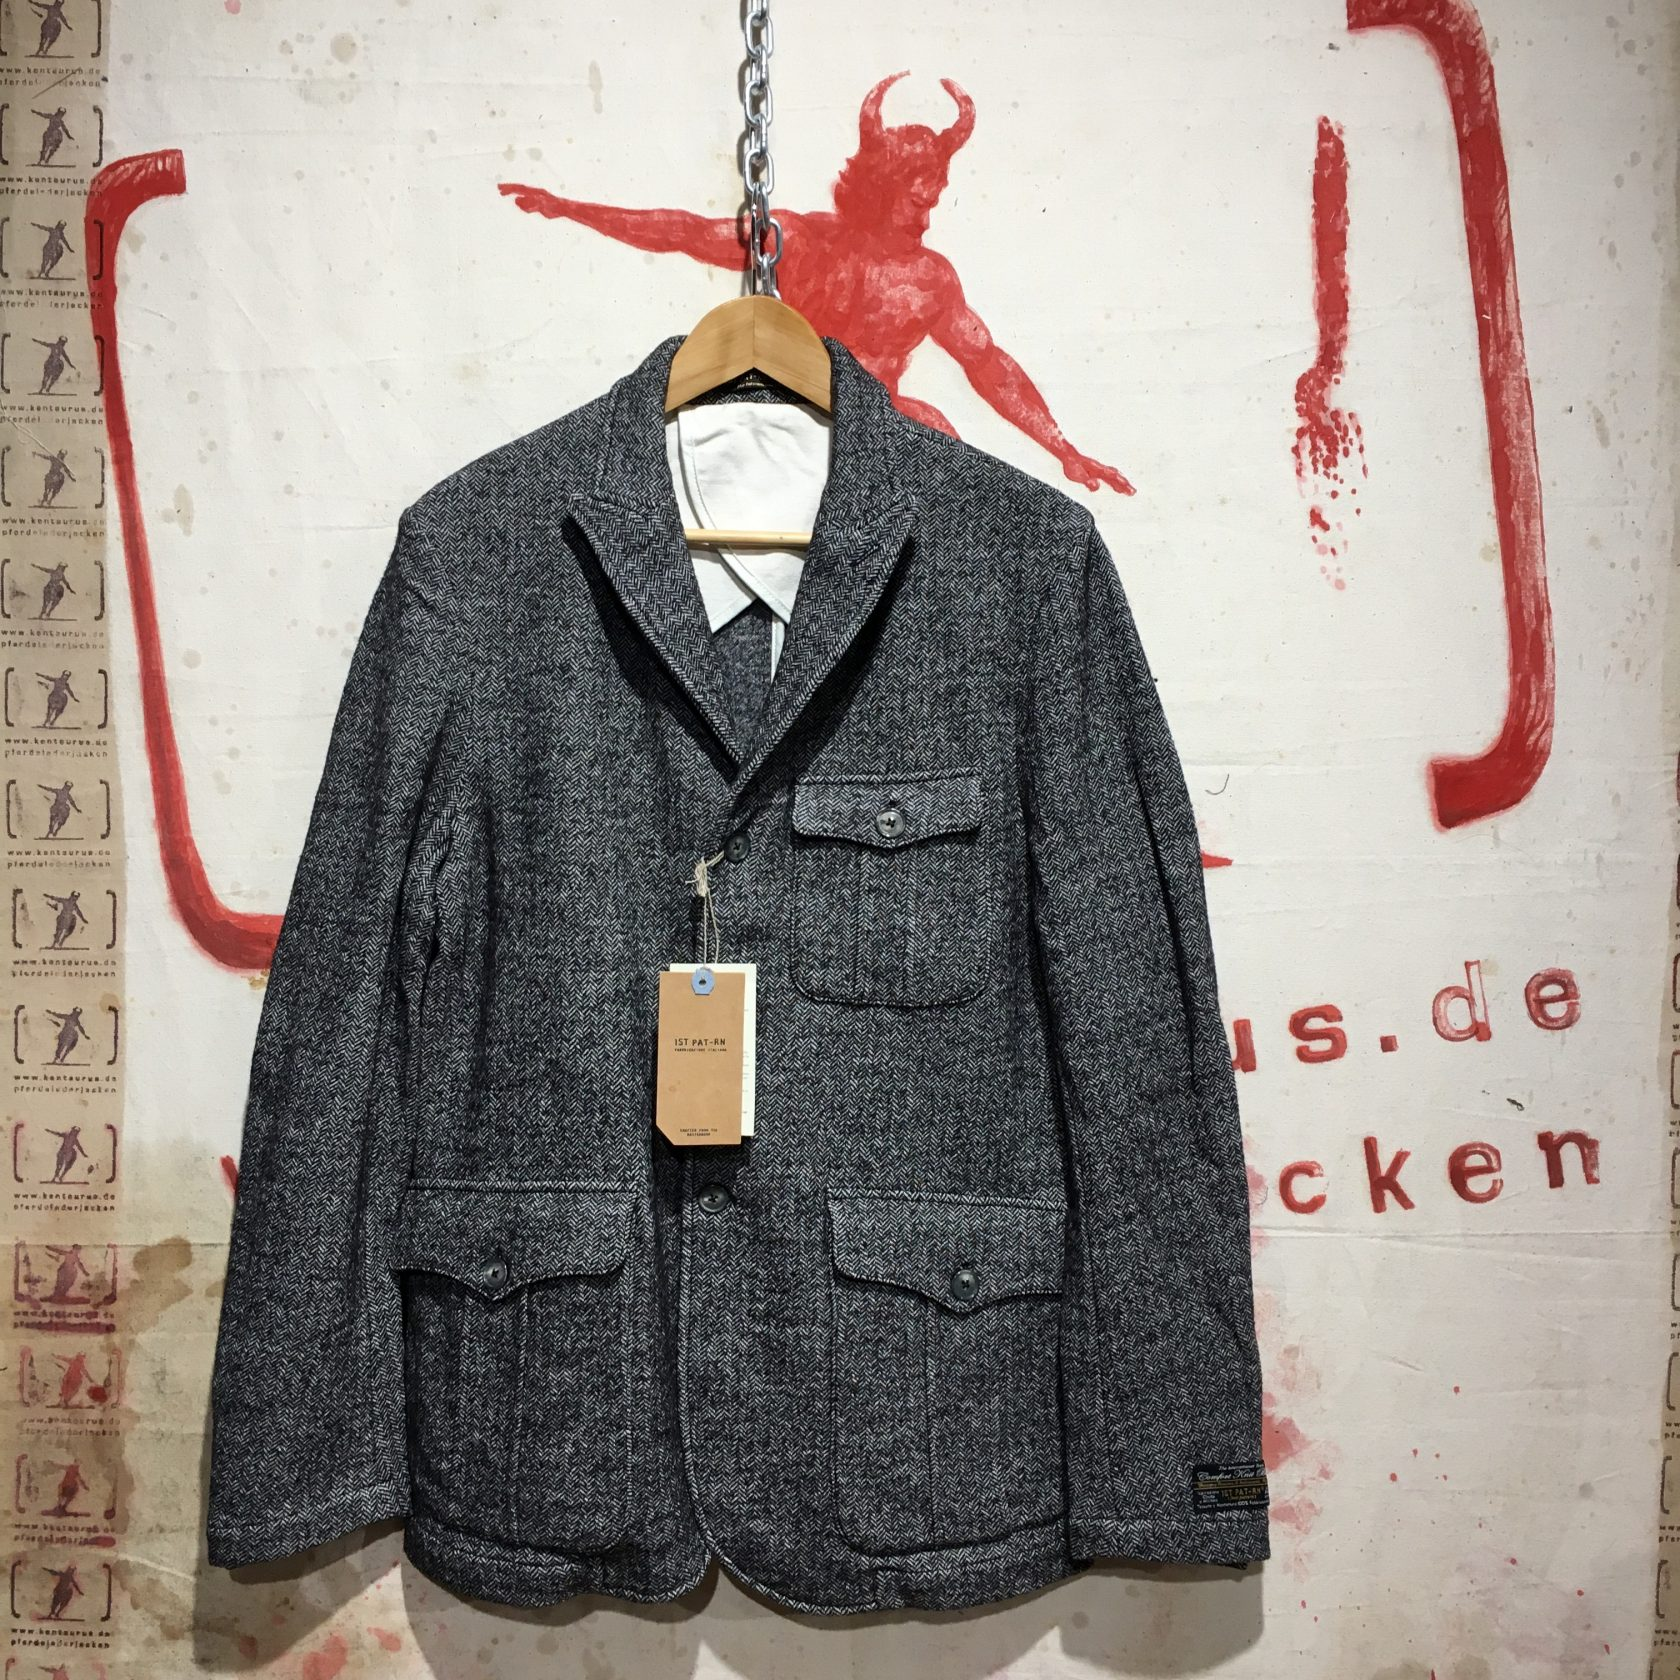 1st-Pat-rn: Cansiglio Jacket grey AW16